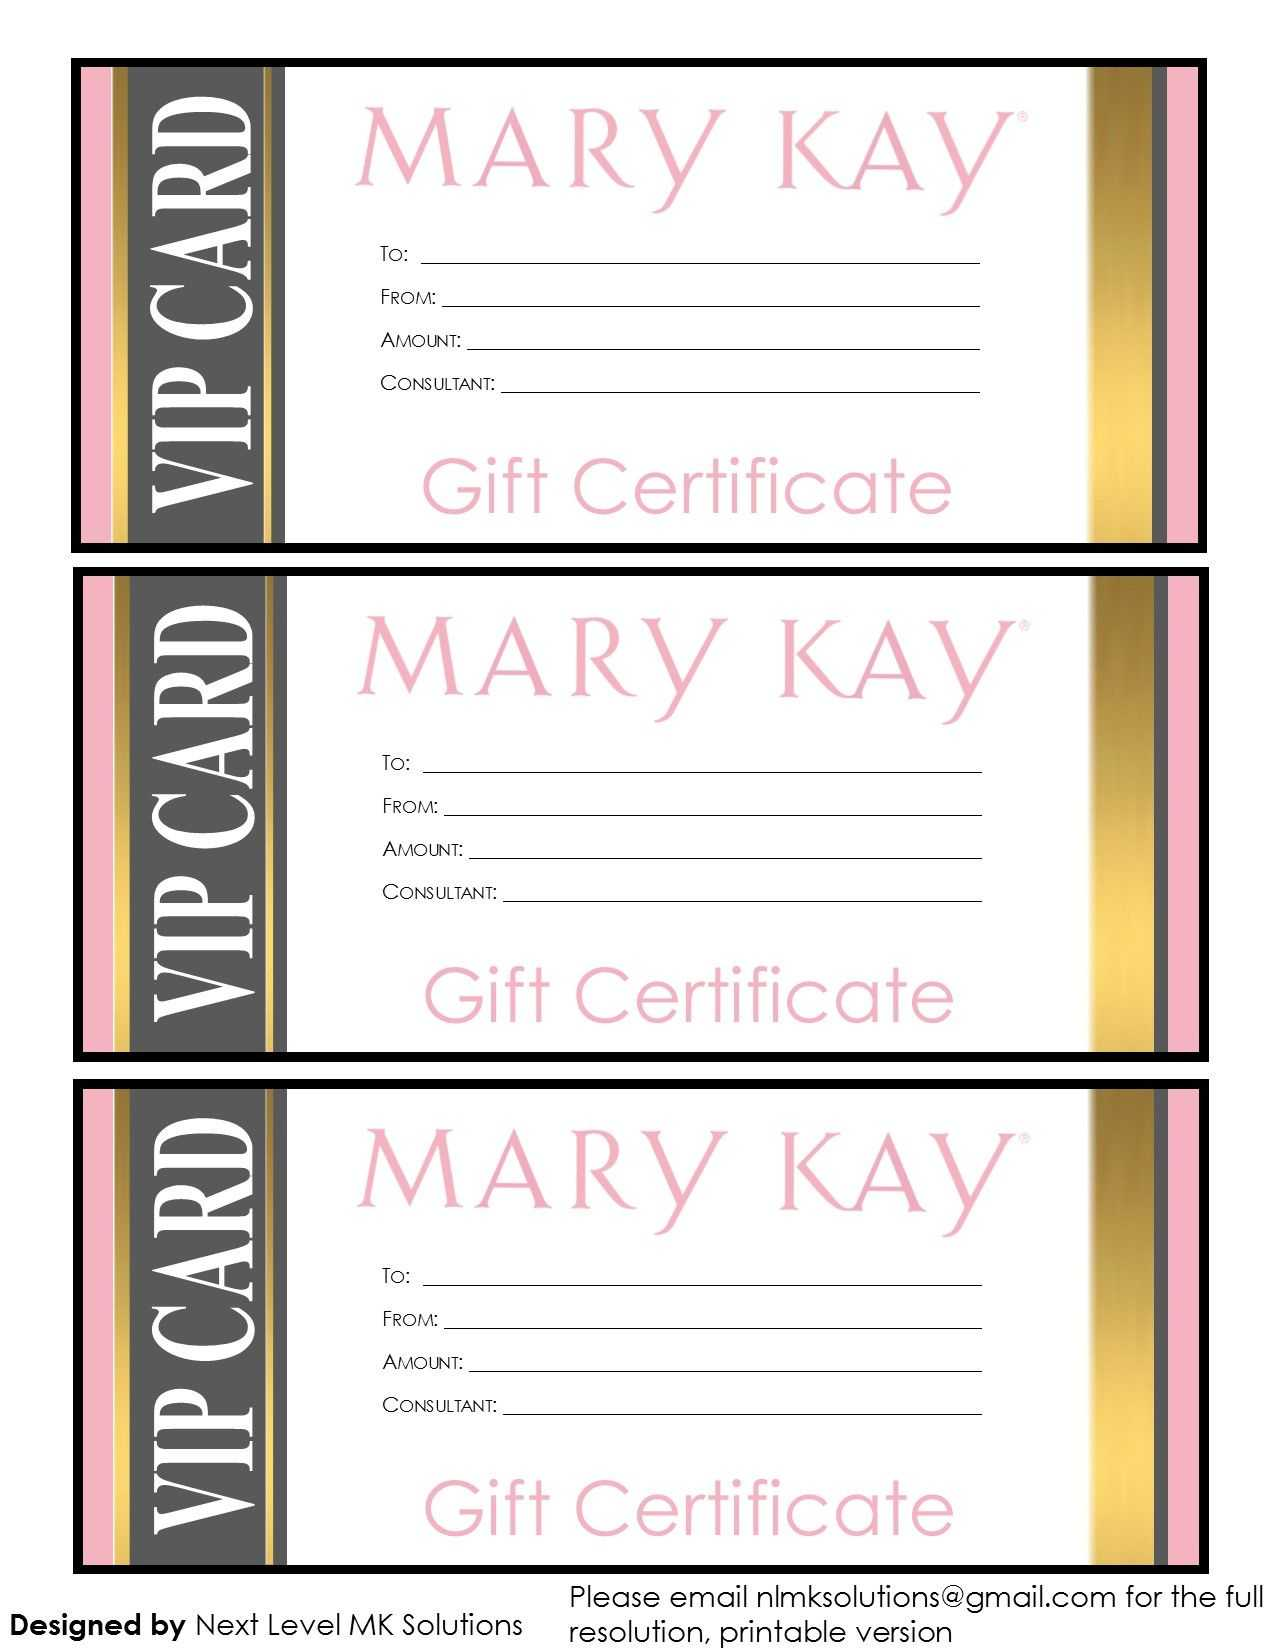 Mary Kay Gift Certificates - Please Email For The Full Pdf With Regard To Mary Kay Gift Certificate Template